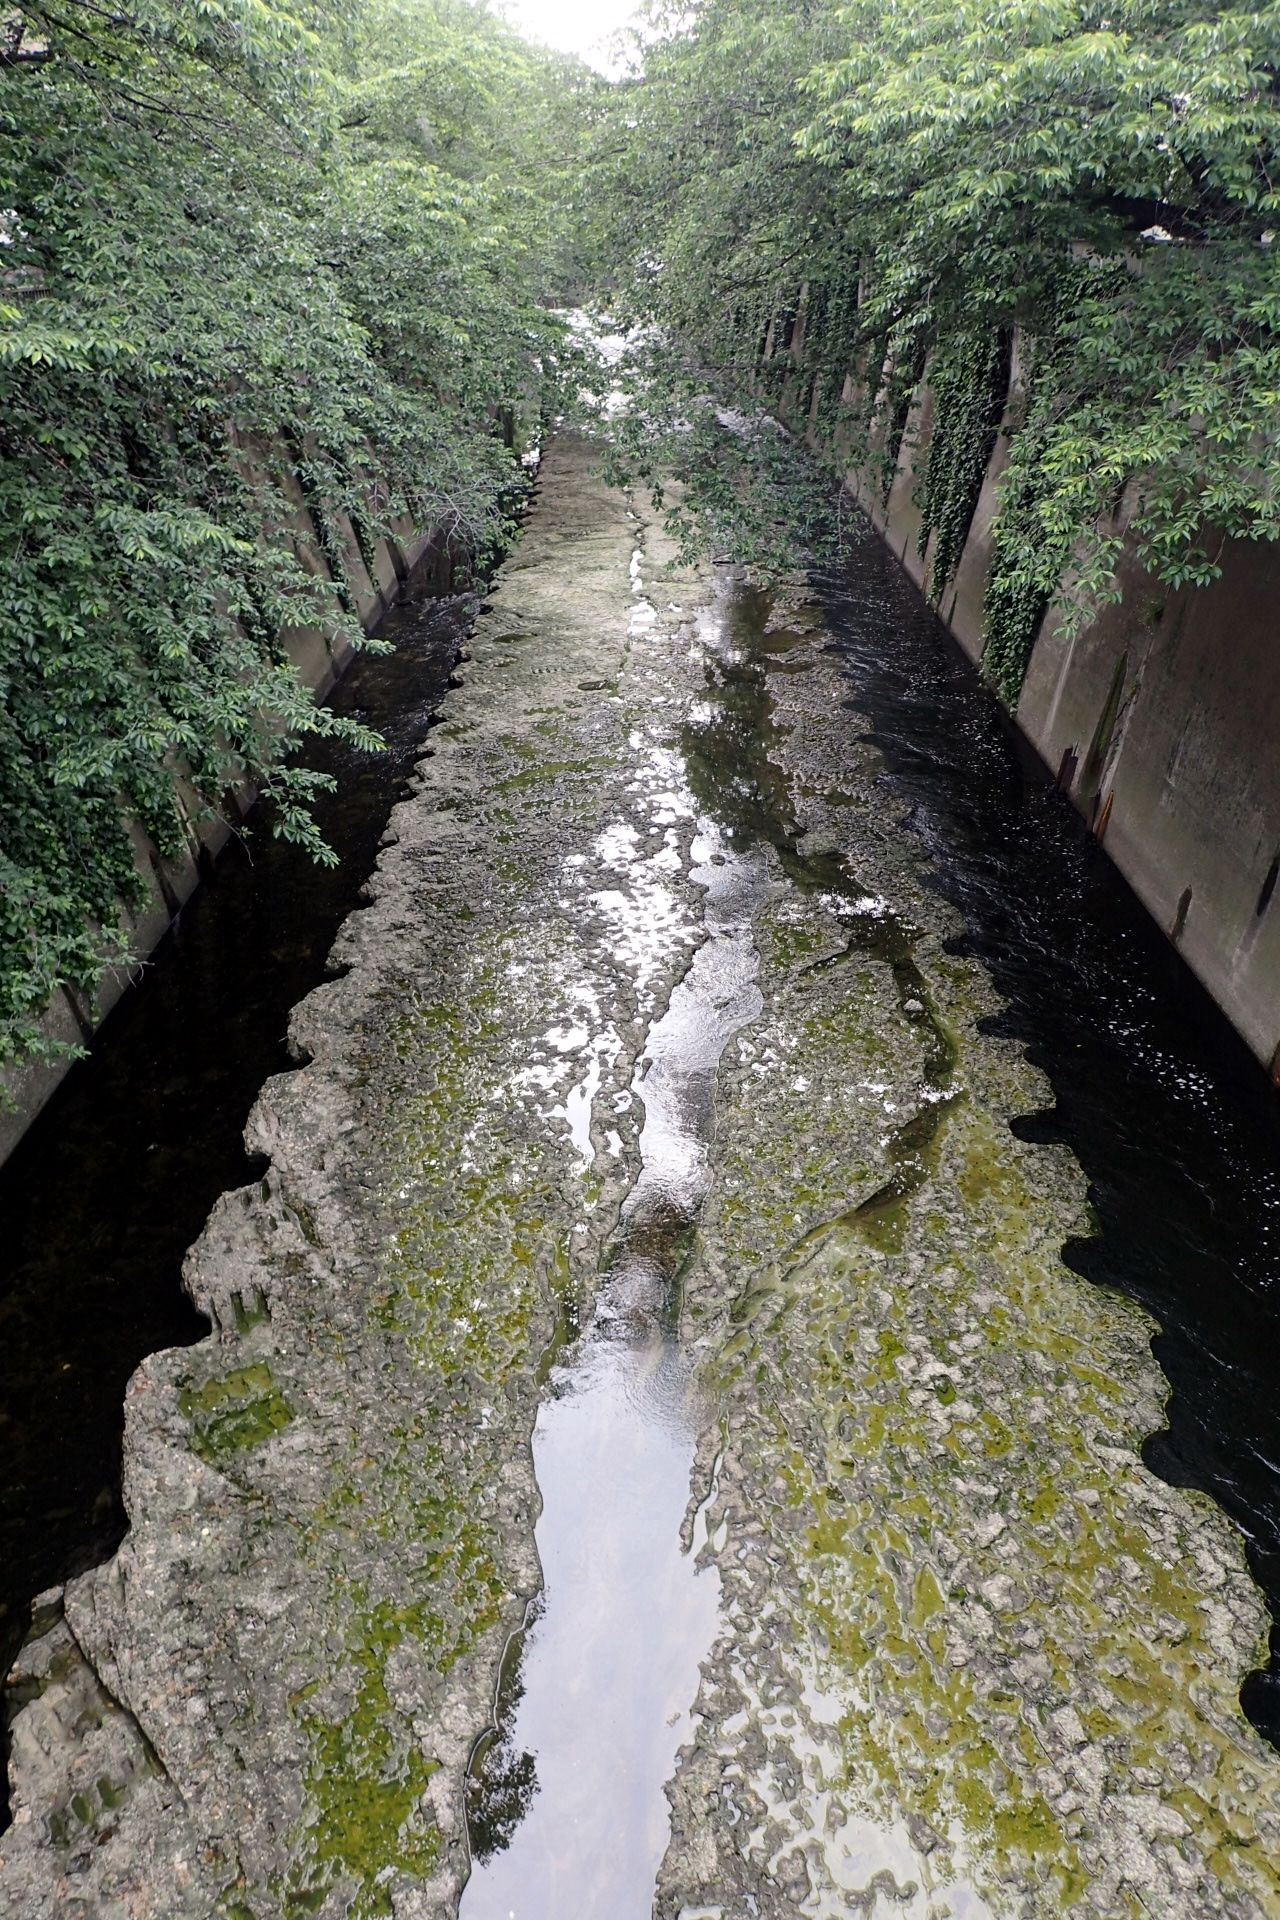 A Bird's Eye View Beauty In Nature Birdseyeview Canal Diminishing Perspective Flowing Water Growth Narrow Nature No People Outdoors Plant River Rock - Object Shinjuku-ku Stagnant Stagnant Water Stream The Way Forward Tranquil Scene Tranquility Vanishing Point Waseda Waseda River Water